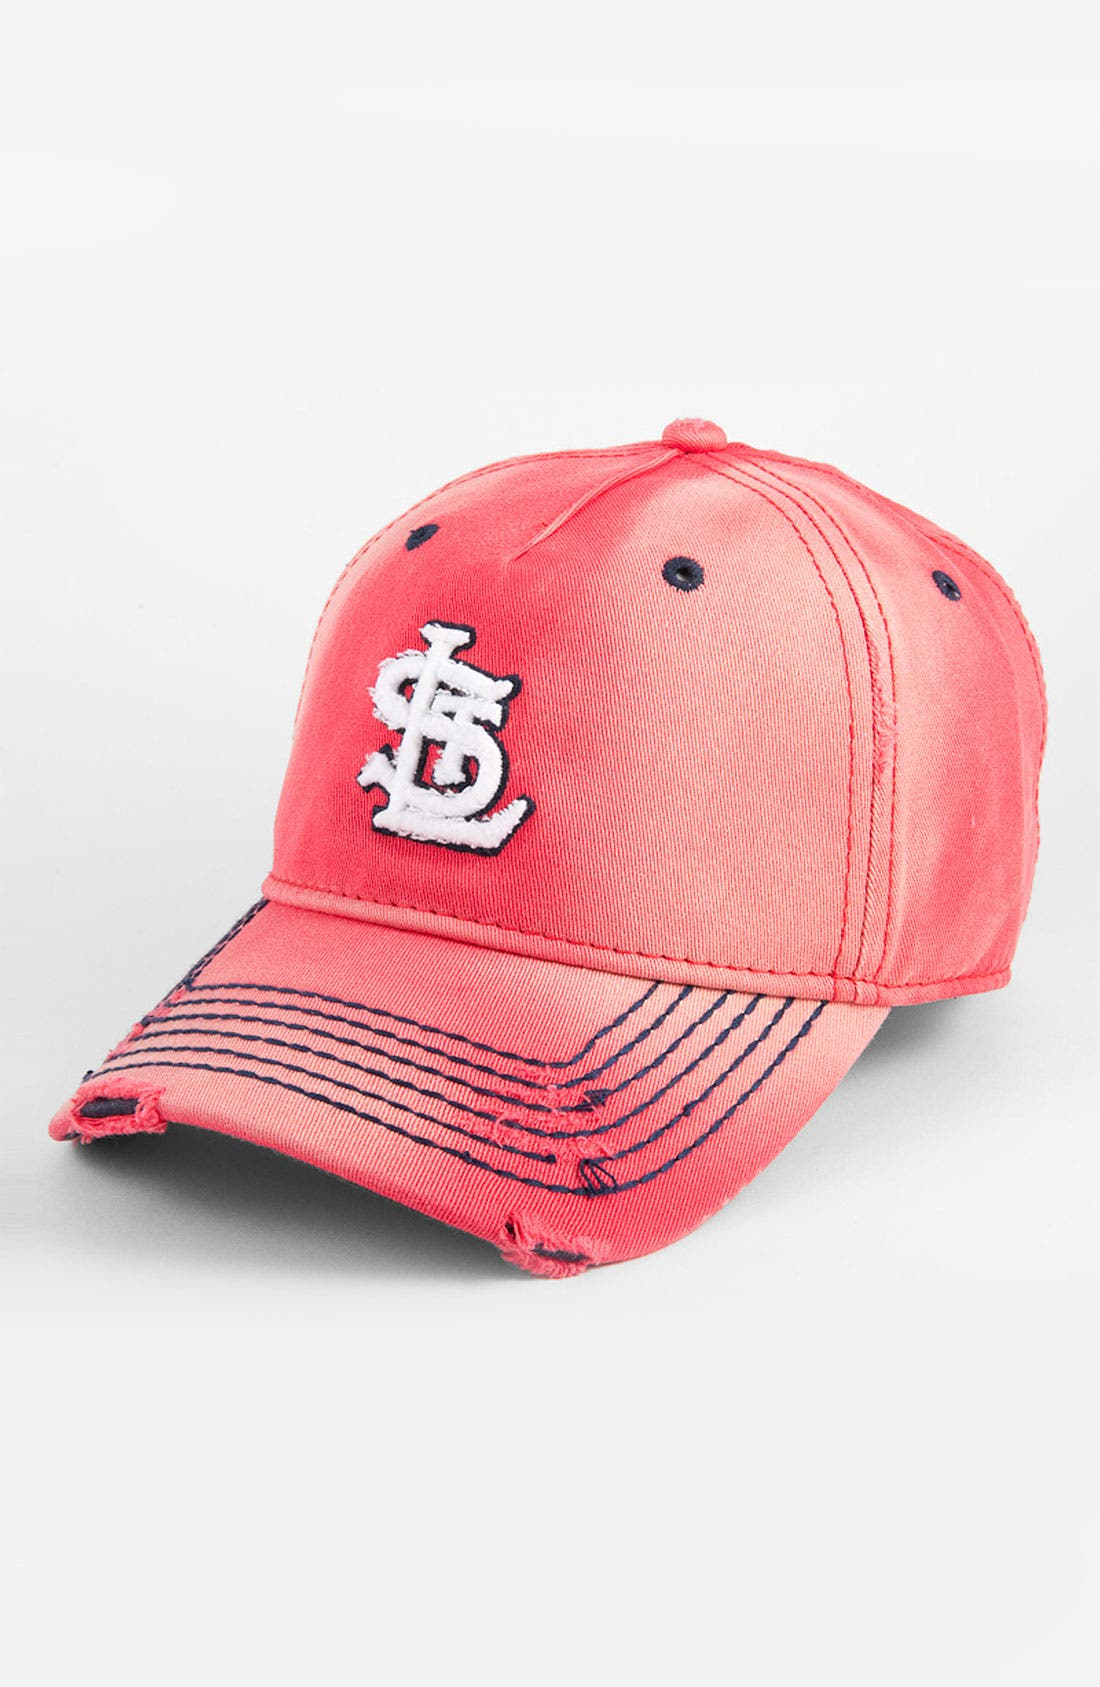 Alternate Image 1 Selected - American Needle 'Cardinals' Baseball Cap